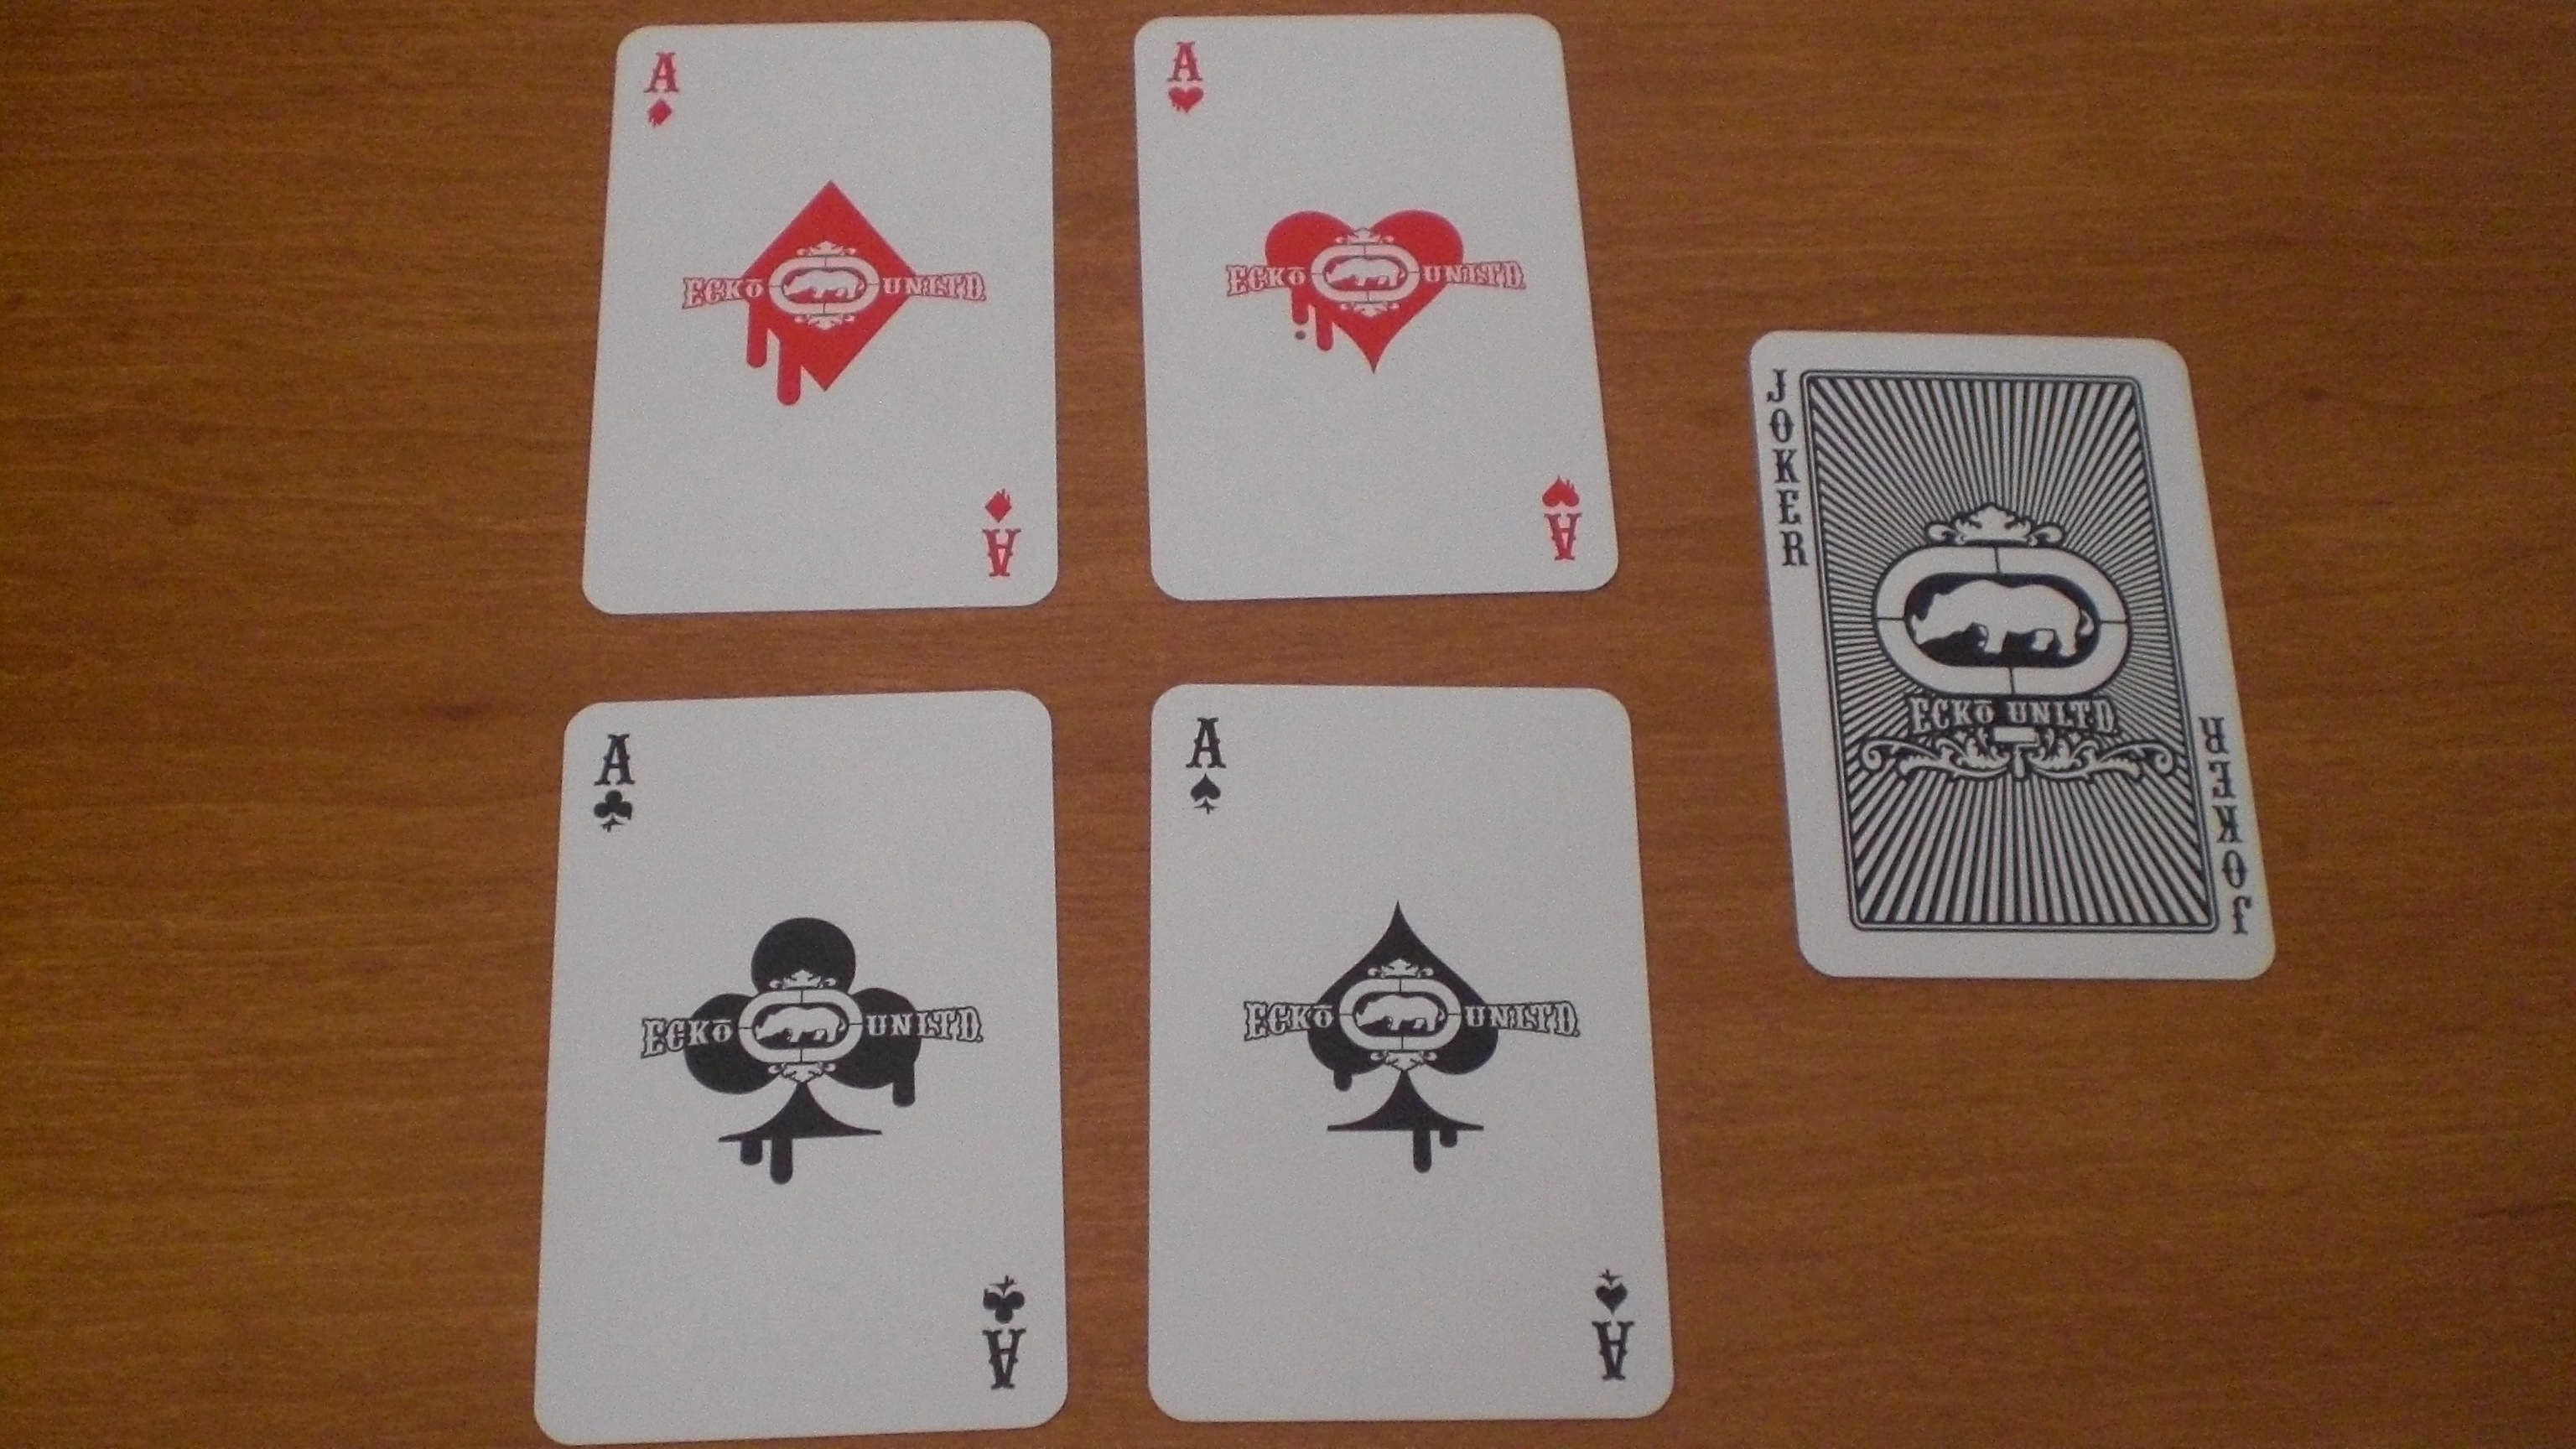 Ecko : Marketing is putting your logo on all the aces and joker.